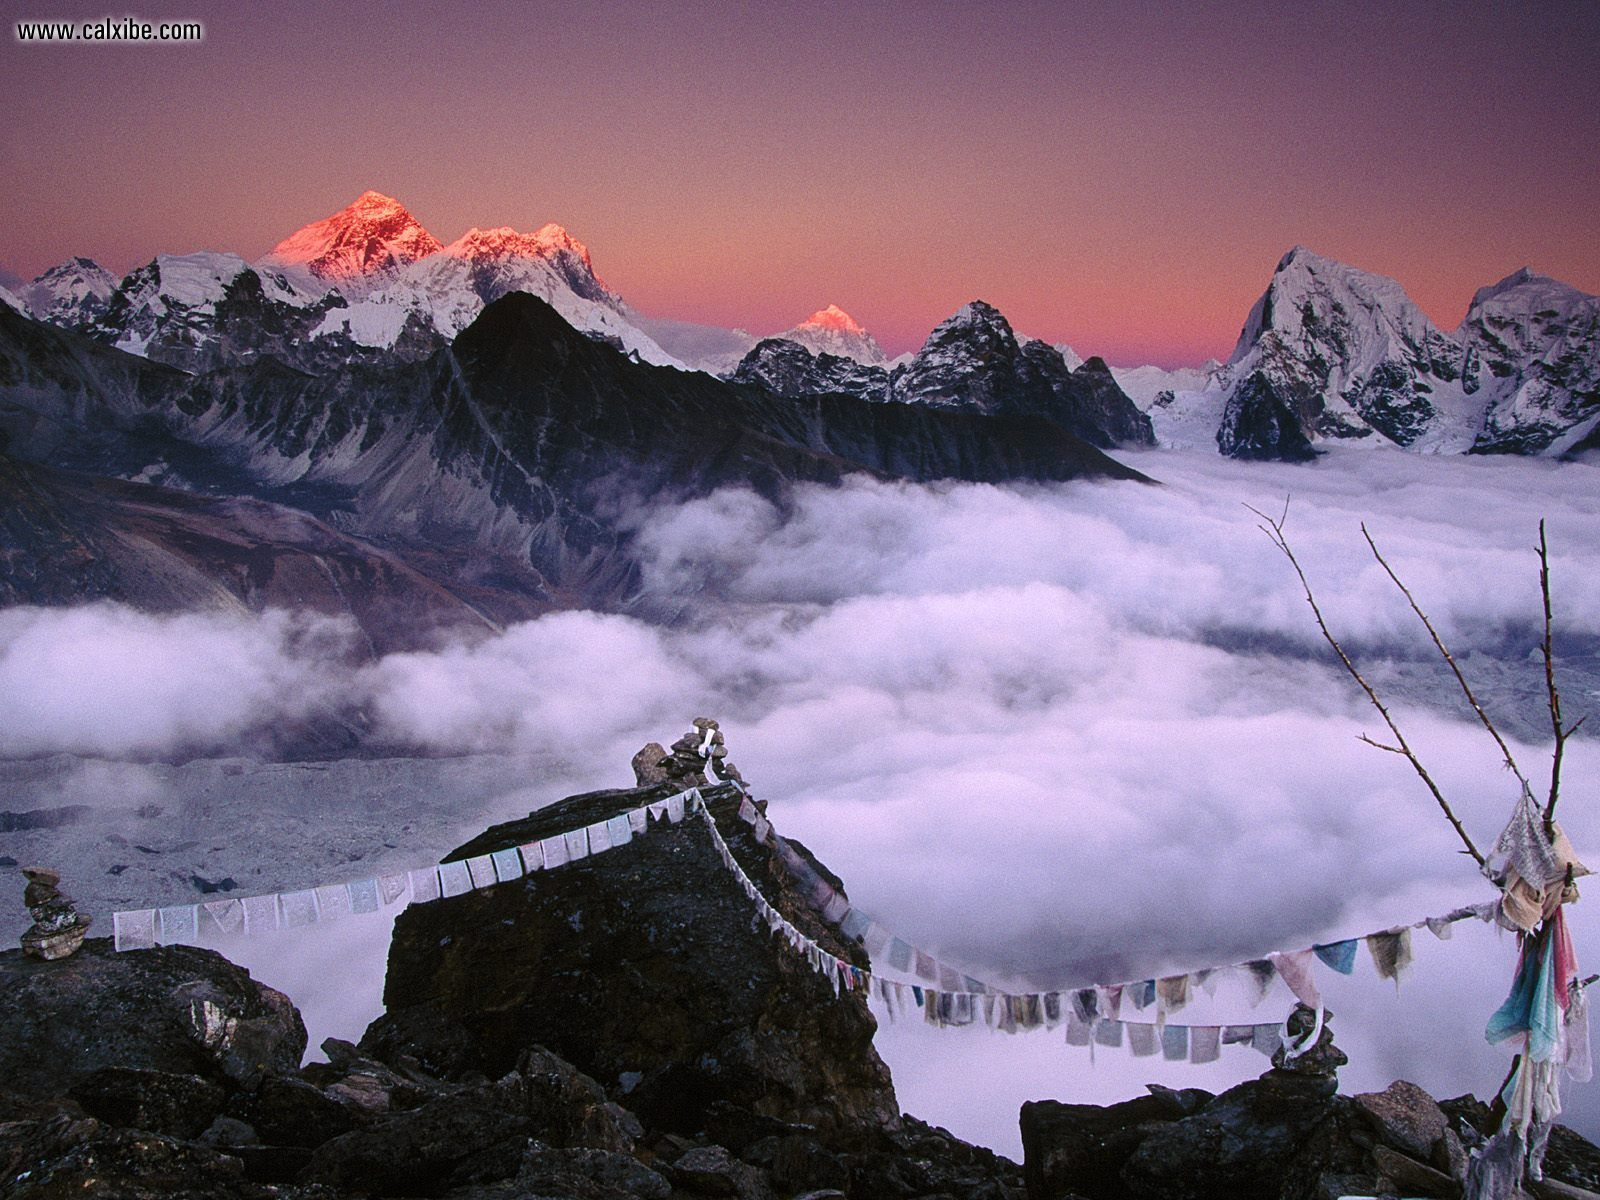 Nature From Everest To Taweche Himalayas Nepal picture nr 16263 1600x1200